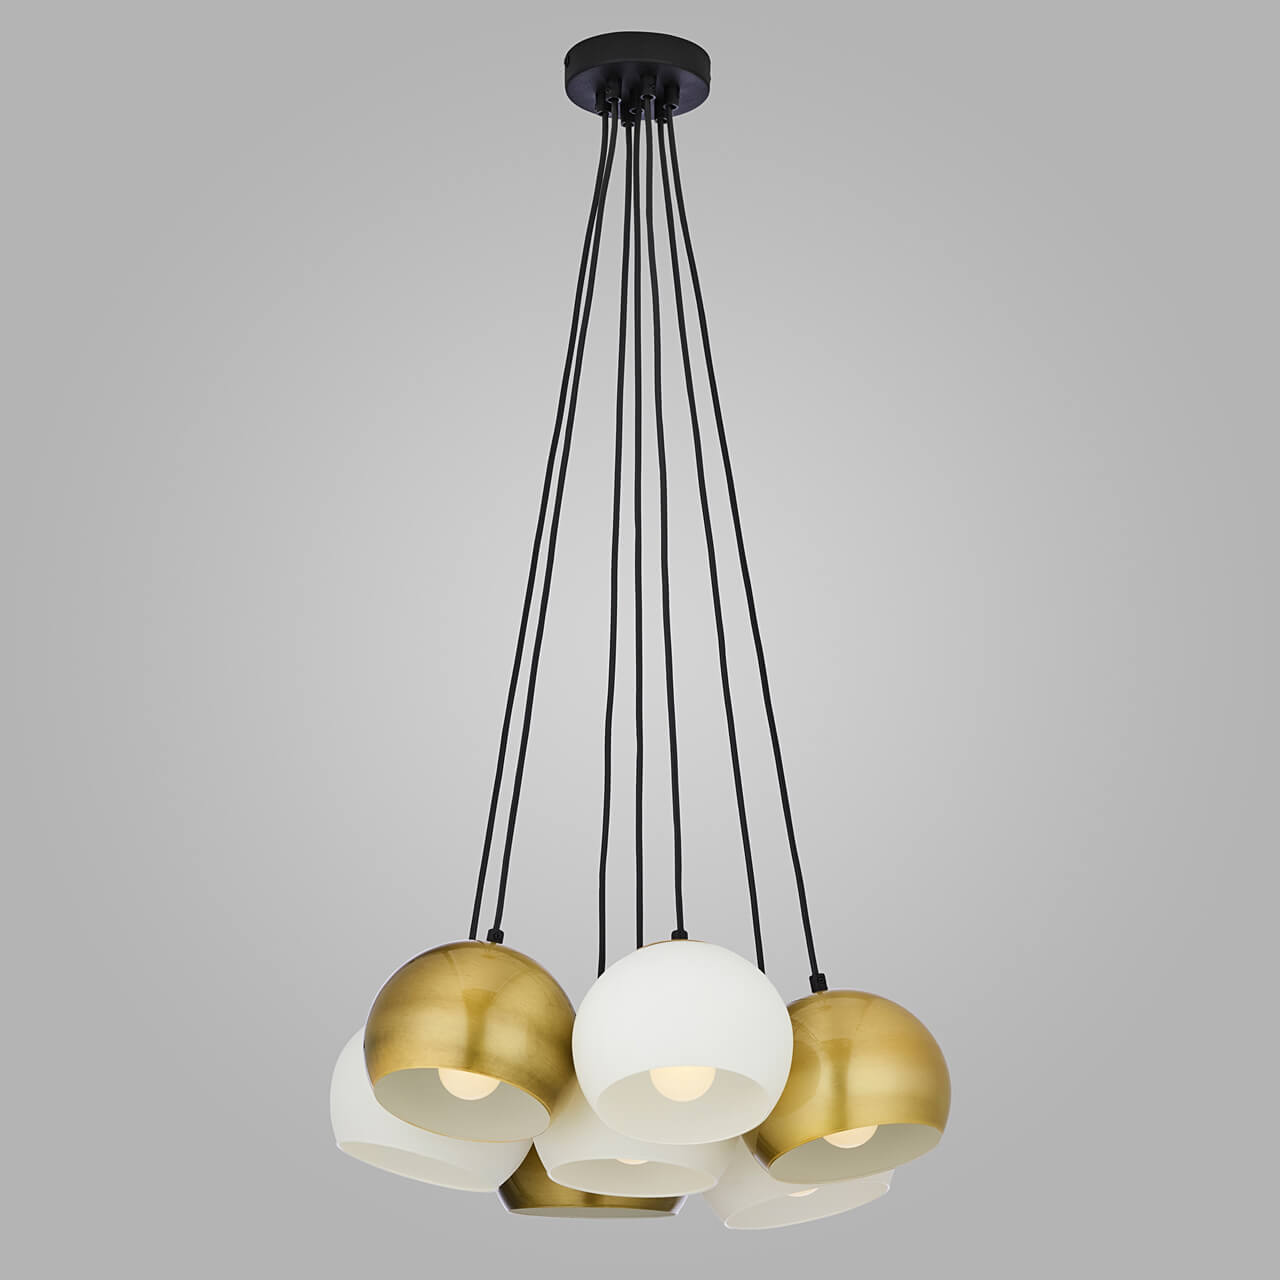 Люстра TK Lighting 2782 Castello